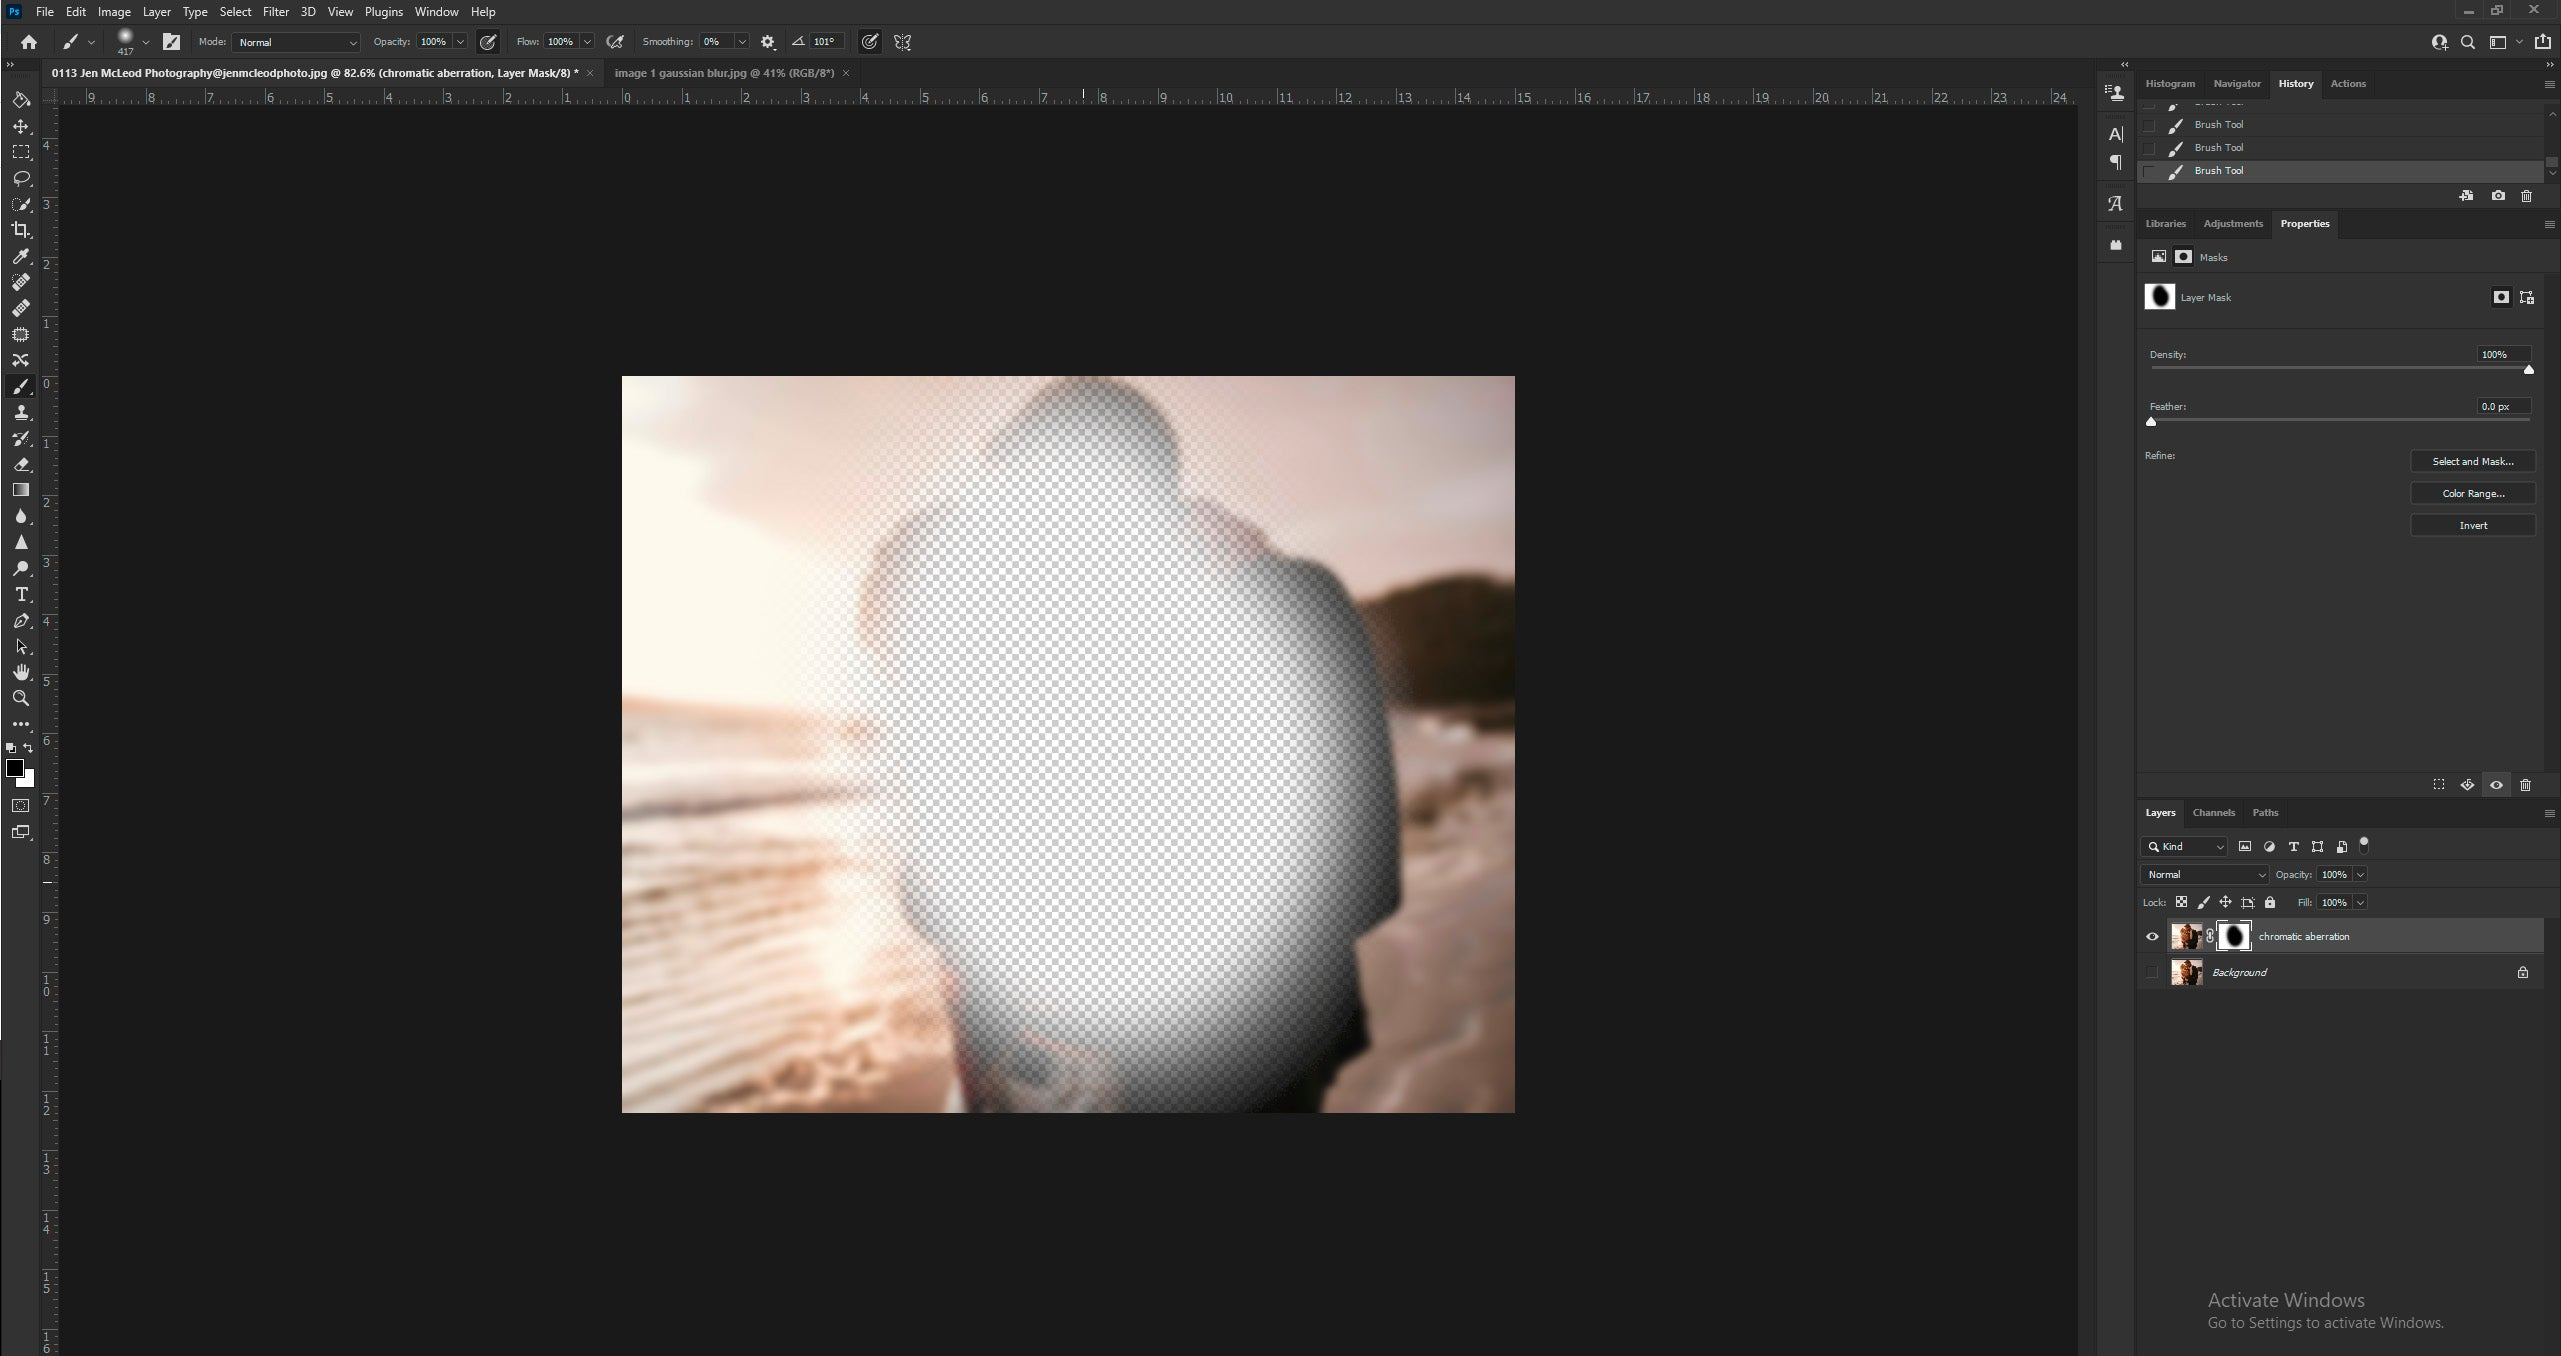 Use of layer mask to mask out blur in Photoshop